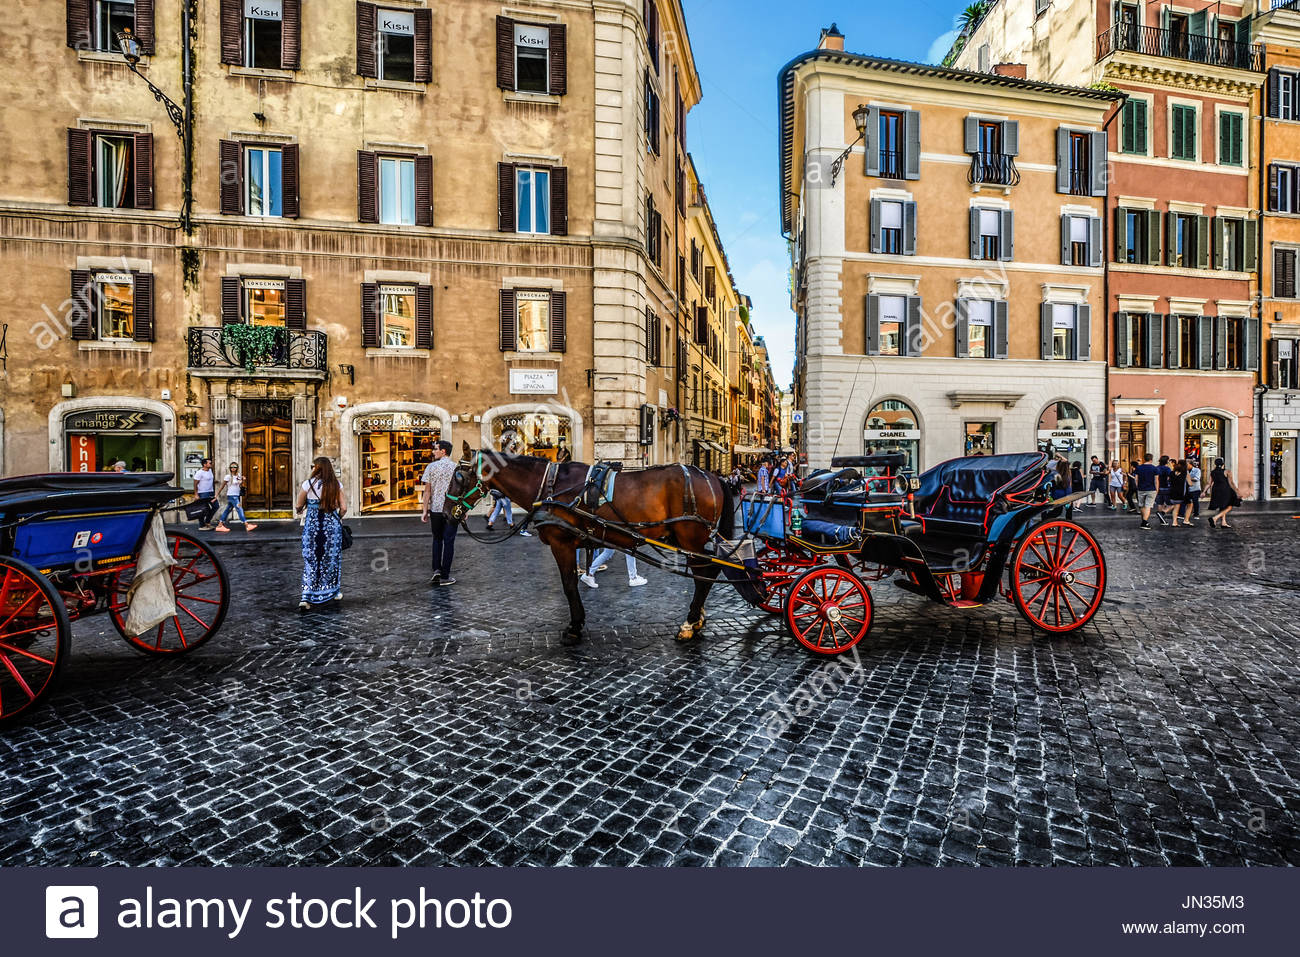 Warm summer day in Rome Italy as a horse and carriage for hire wait for tourists - Stock Image